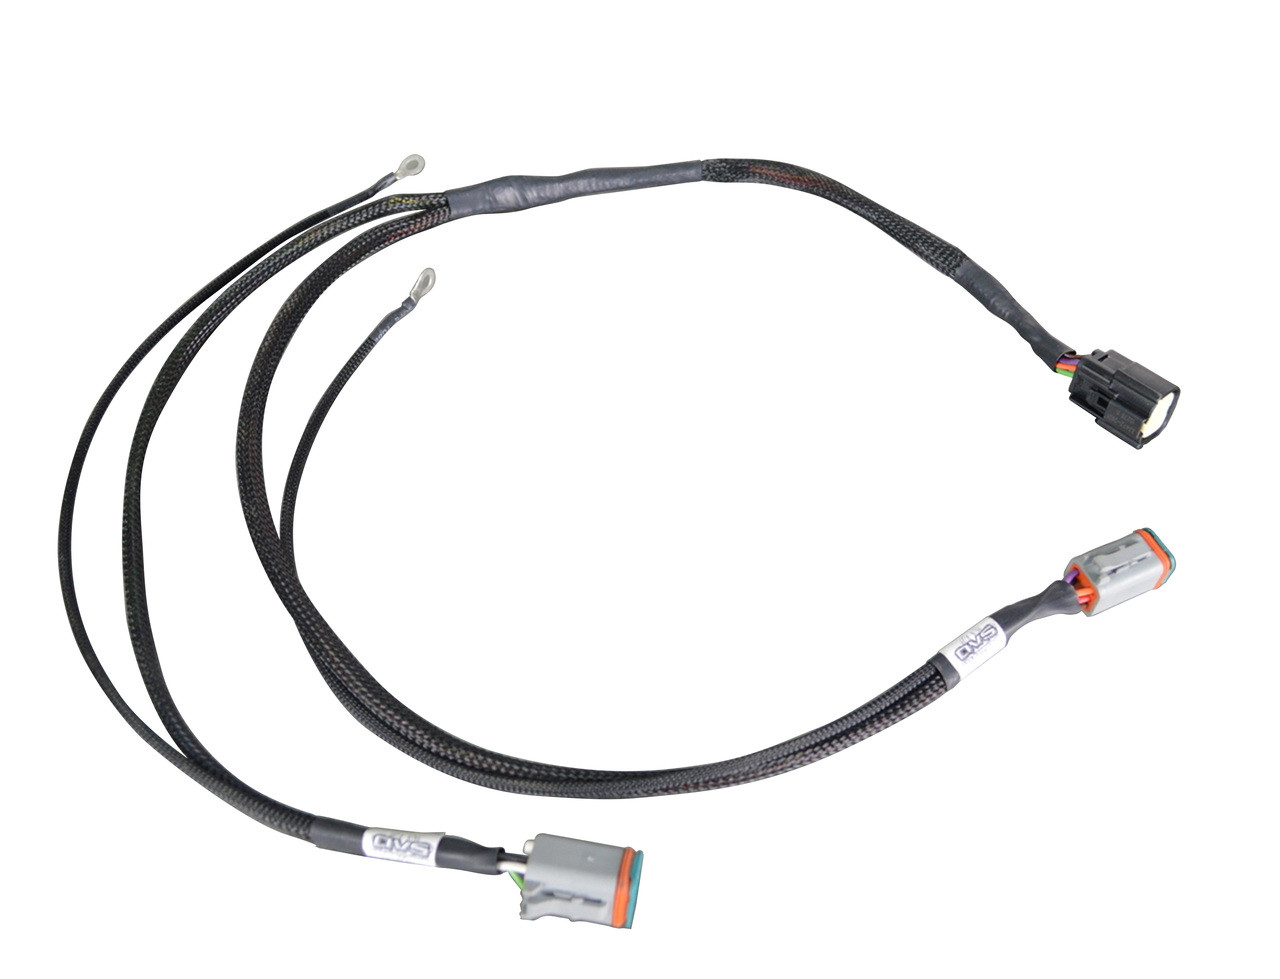 Avs Valve Wiring Harness For Accuair Endo Vt Tank To E Level Power Window Diagram Switchspeed